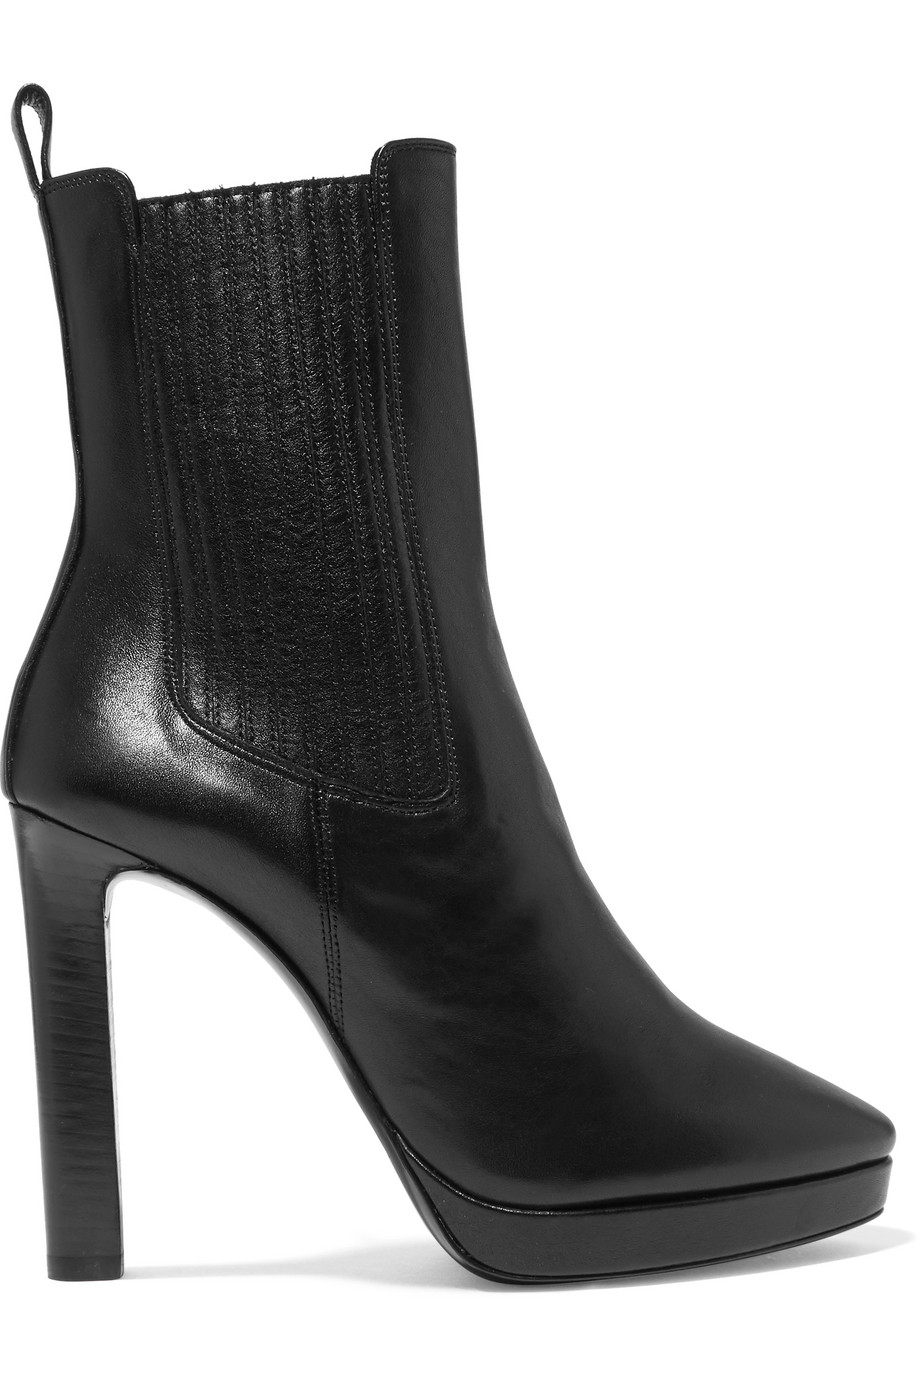 Hall leather platform ankle boots